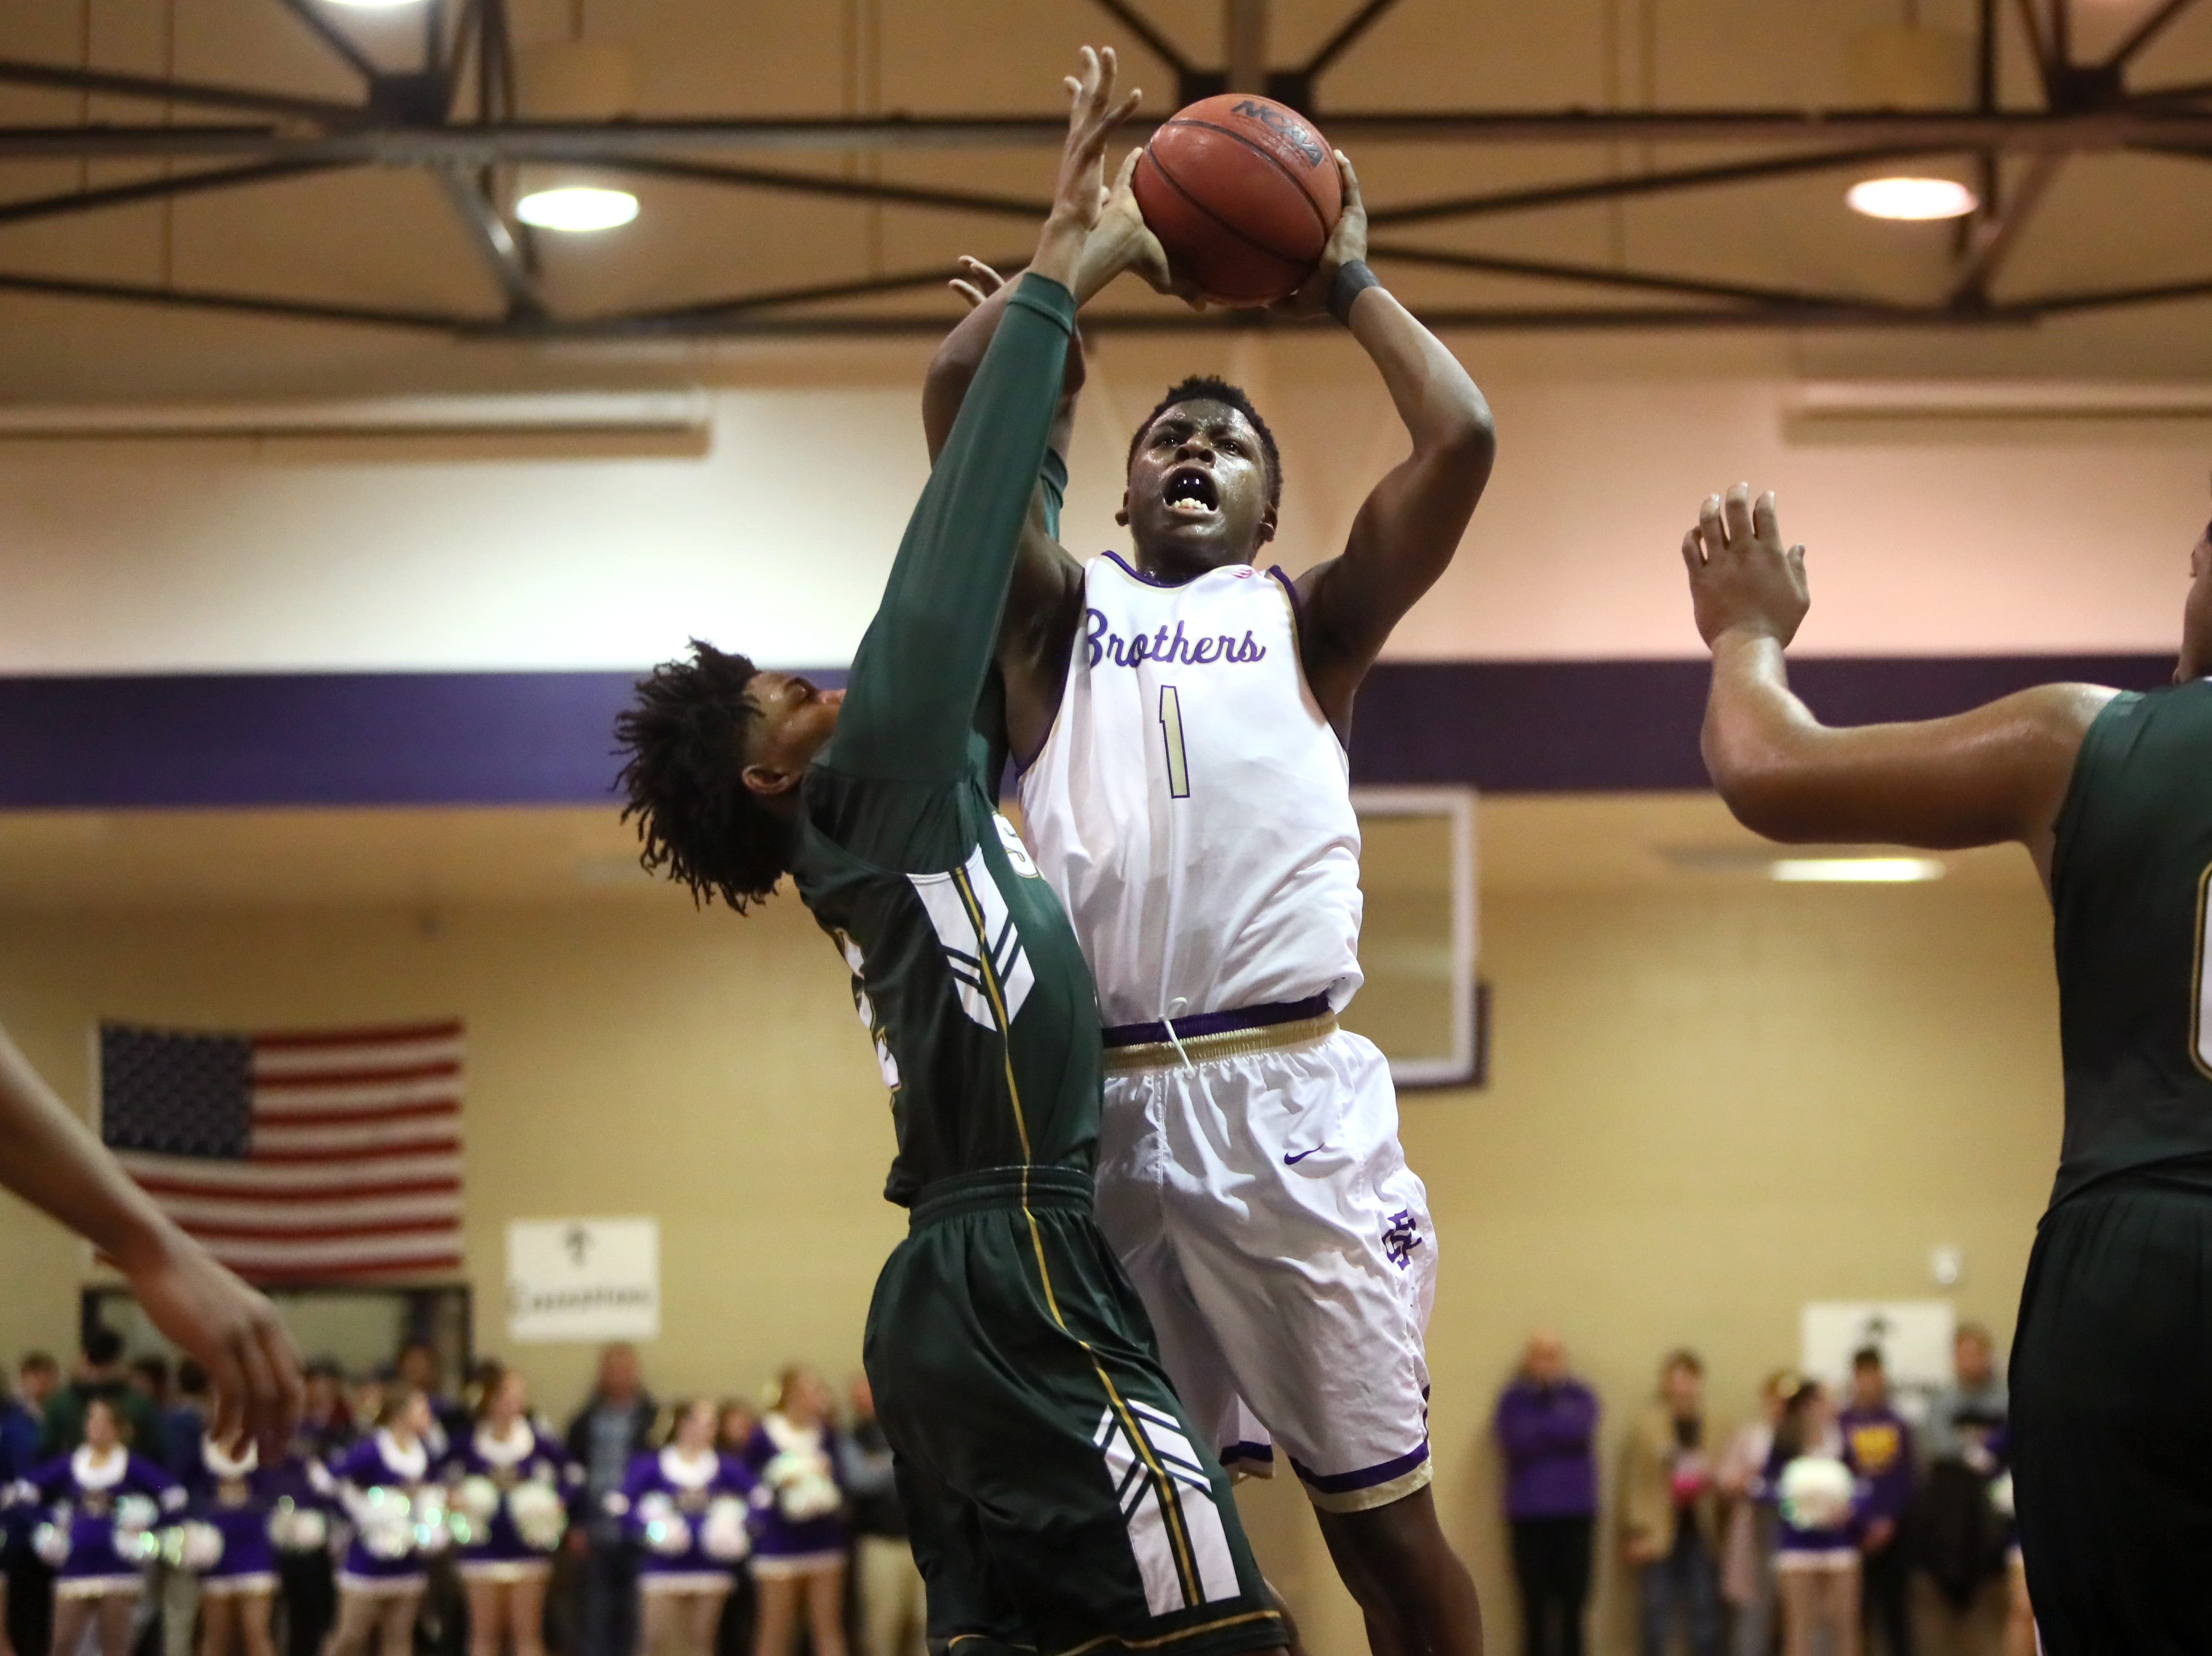 Christian Brothers' Chandler Jackson shoots the ball over Briarcrest's Scooter Malone during their game at Christian Brothers High School on Friday, Jan. 11, 2019.